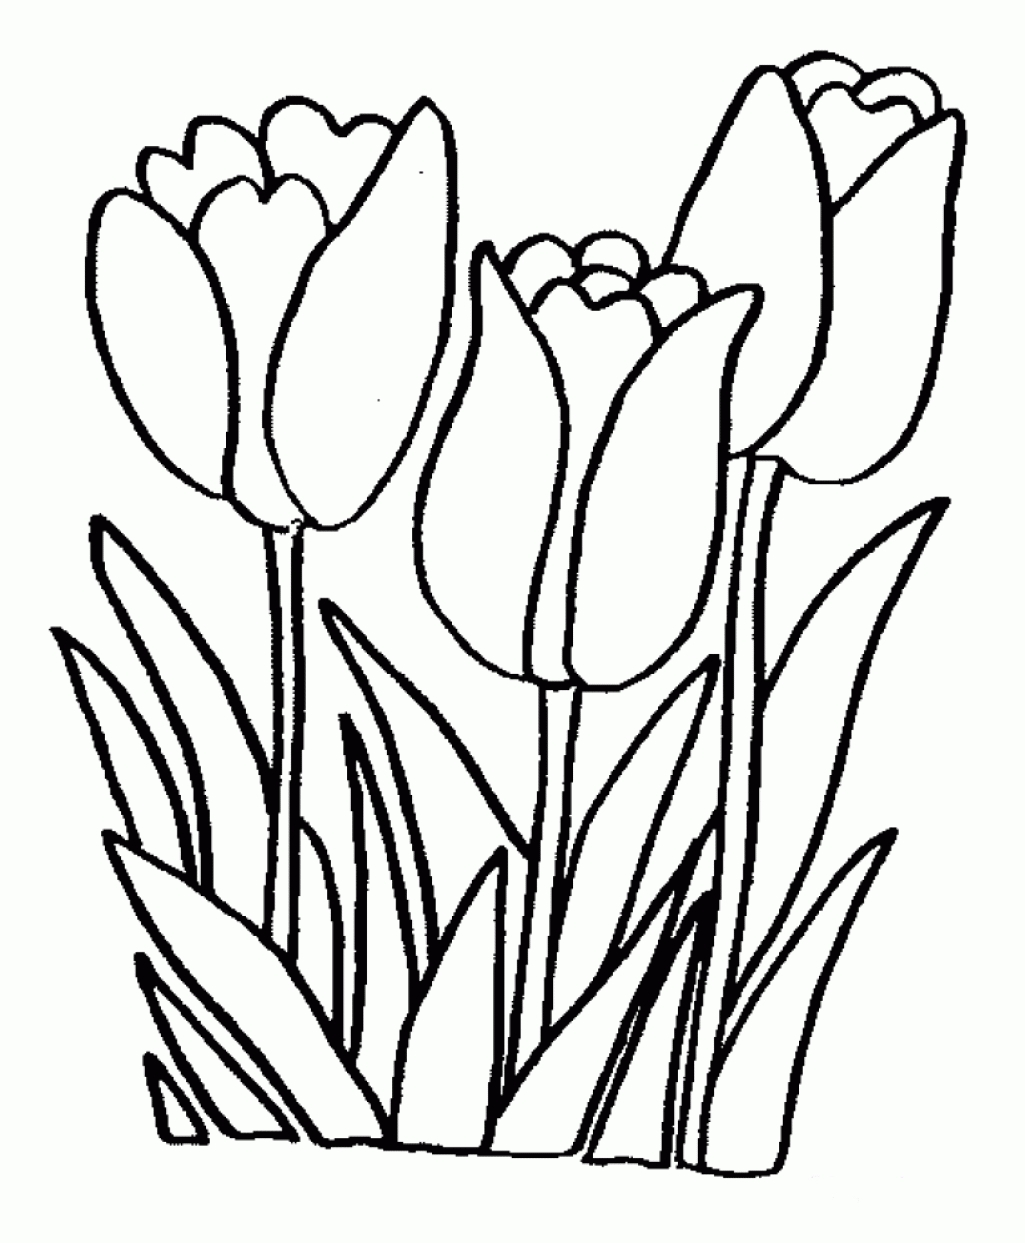 1025x1243 Coloring Pages Flower Free Printable Easy Within Plans